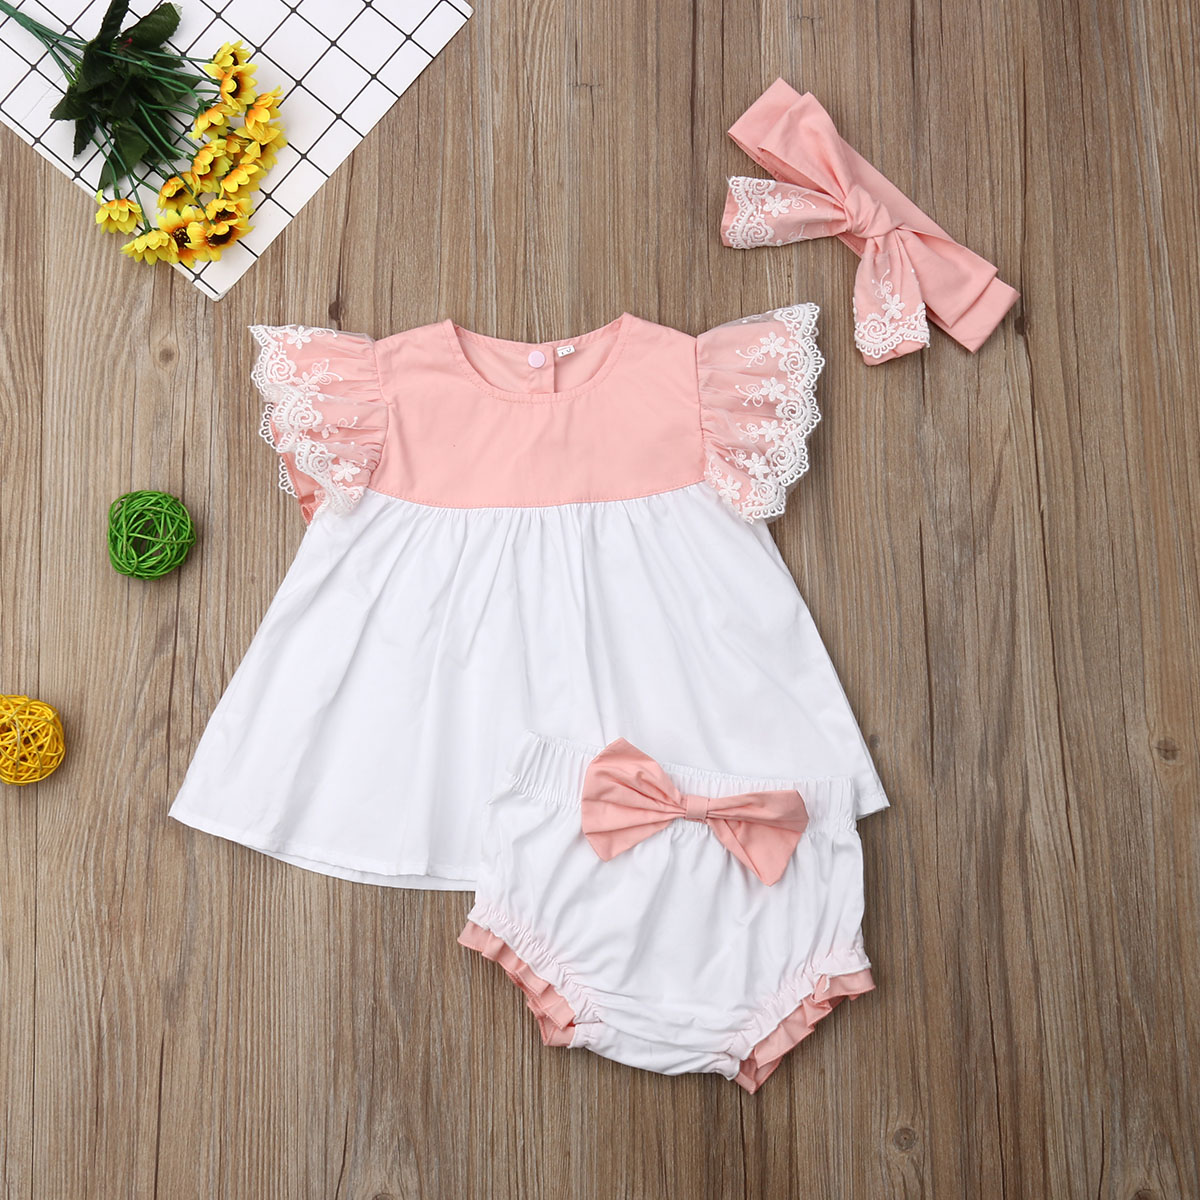 Emmababy Newborn Baby Girls Clothes Fly Sleeve Tops  Shorts Headband Bow Knot 3PCS Outfit Set